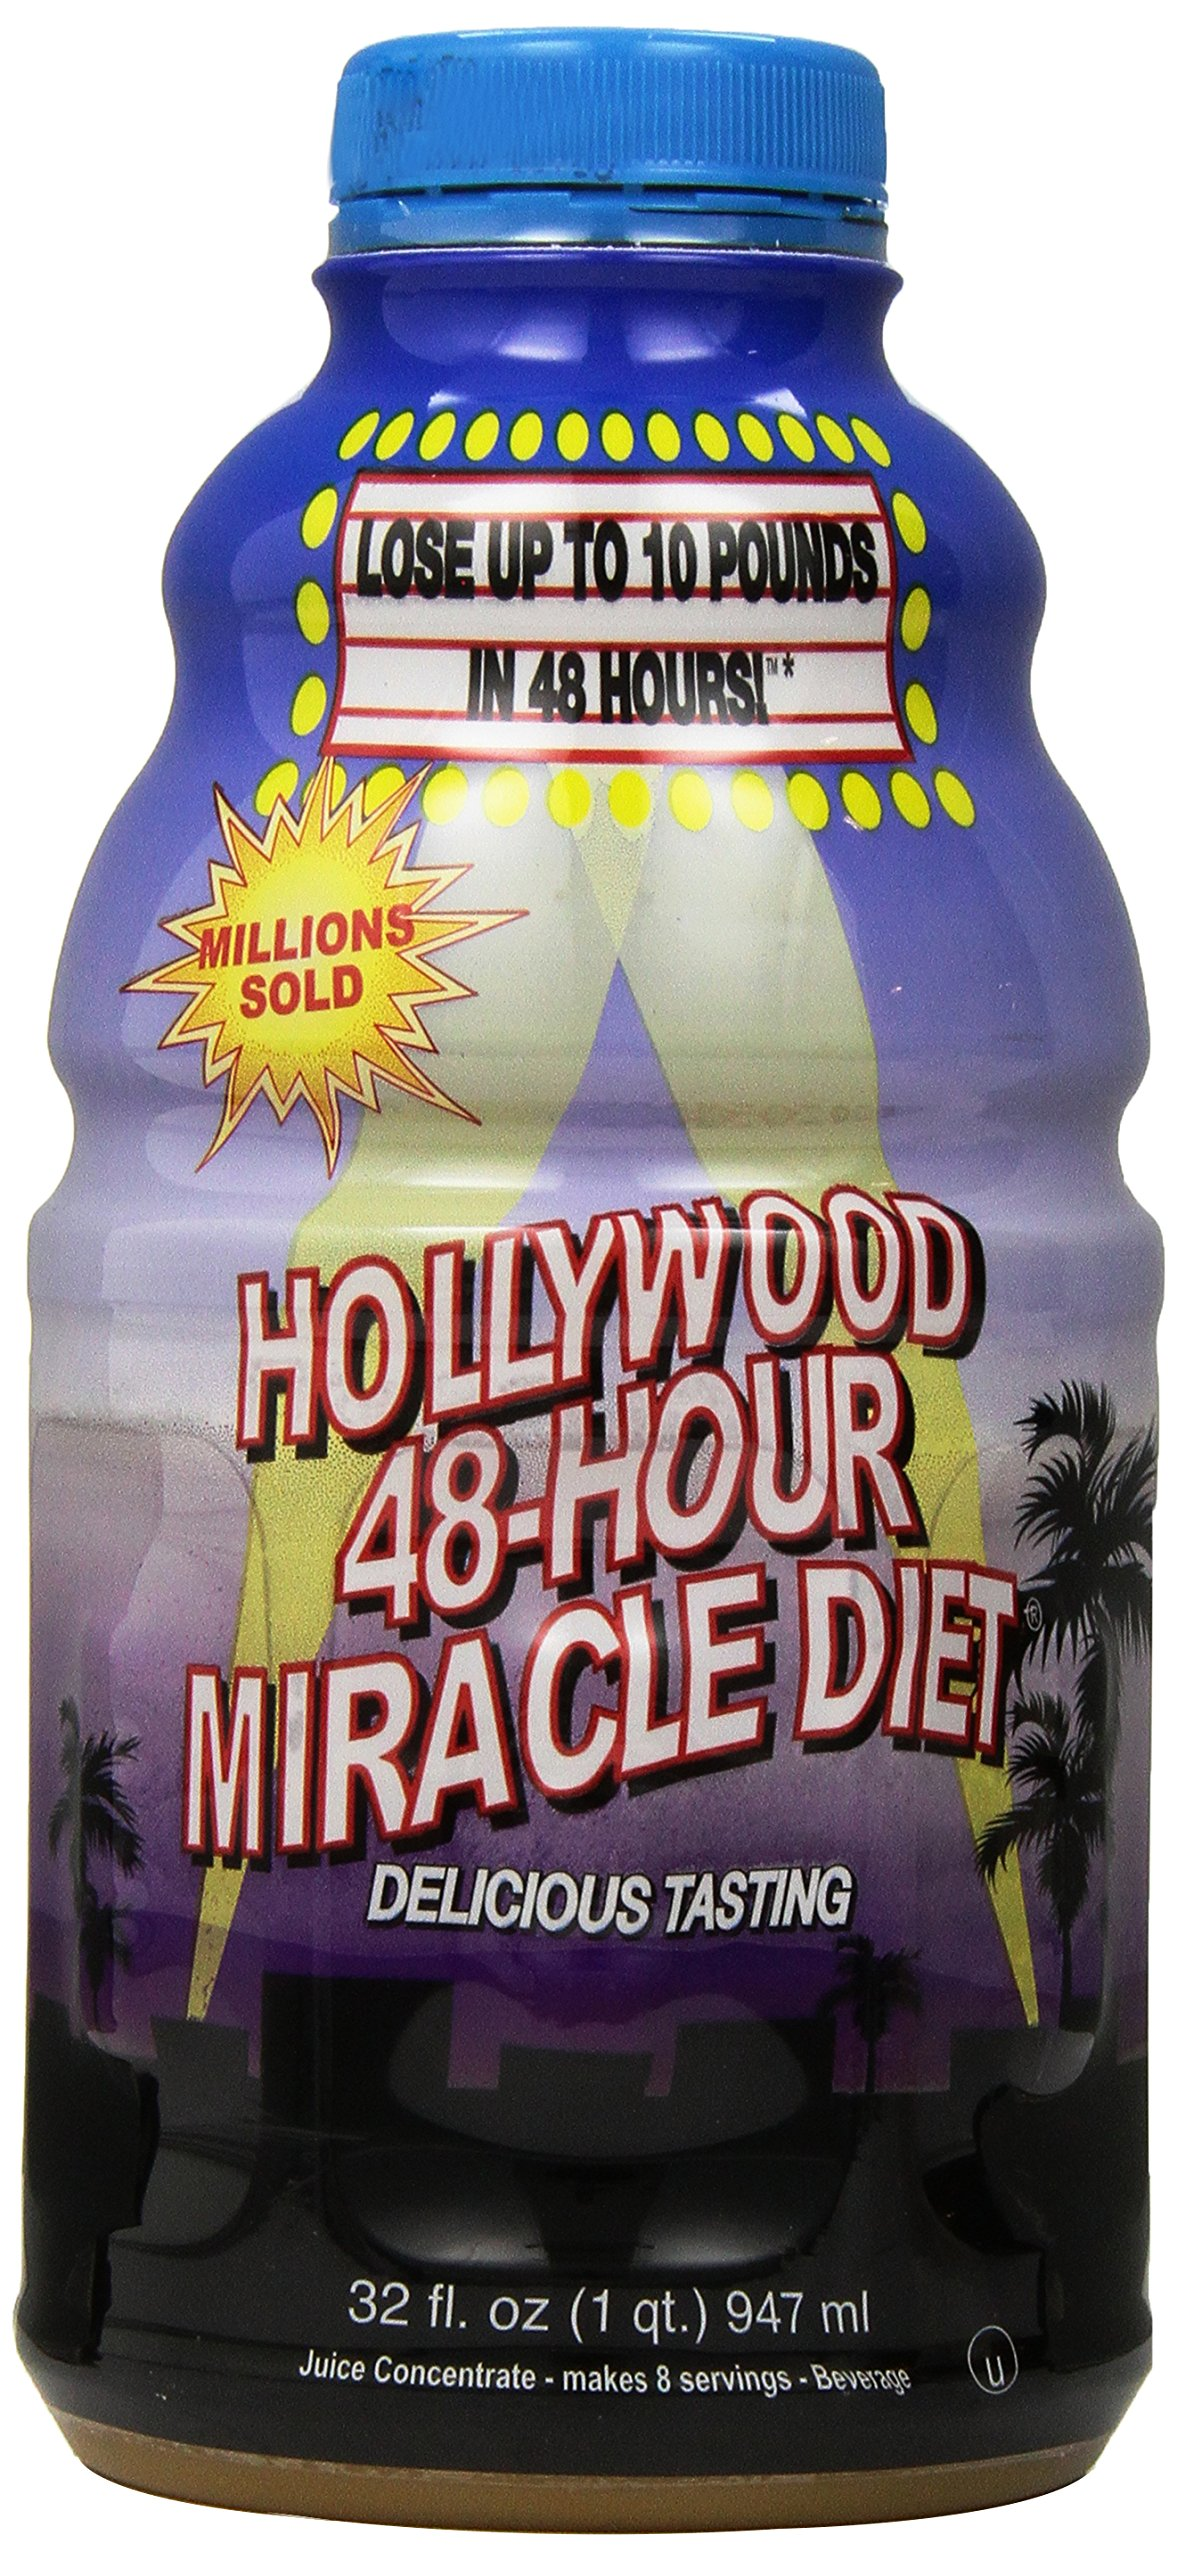 Hollywood 48-Hour Miracle Diet, 32-Ounce Bottles (Pack of 2) by Hollywood Miracle Diet